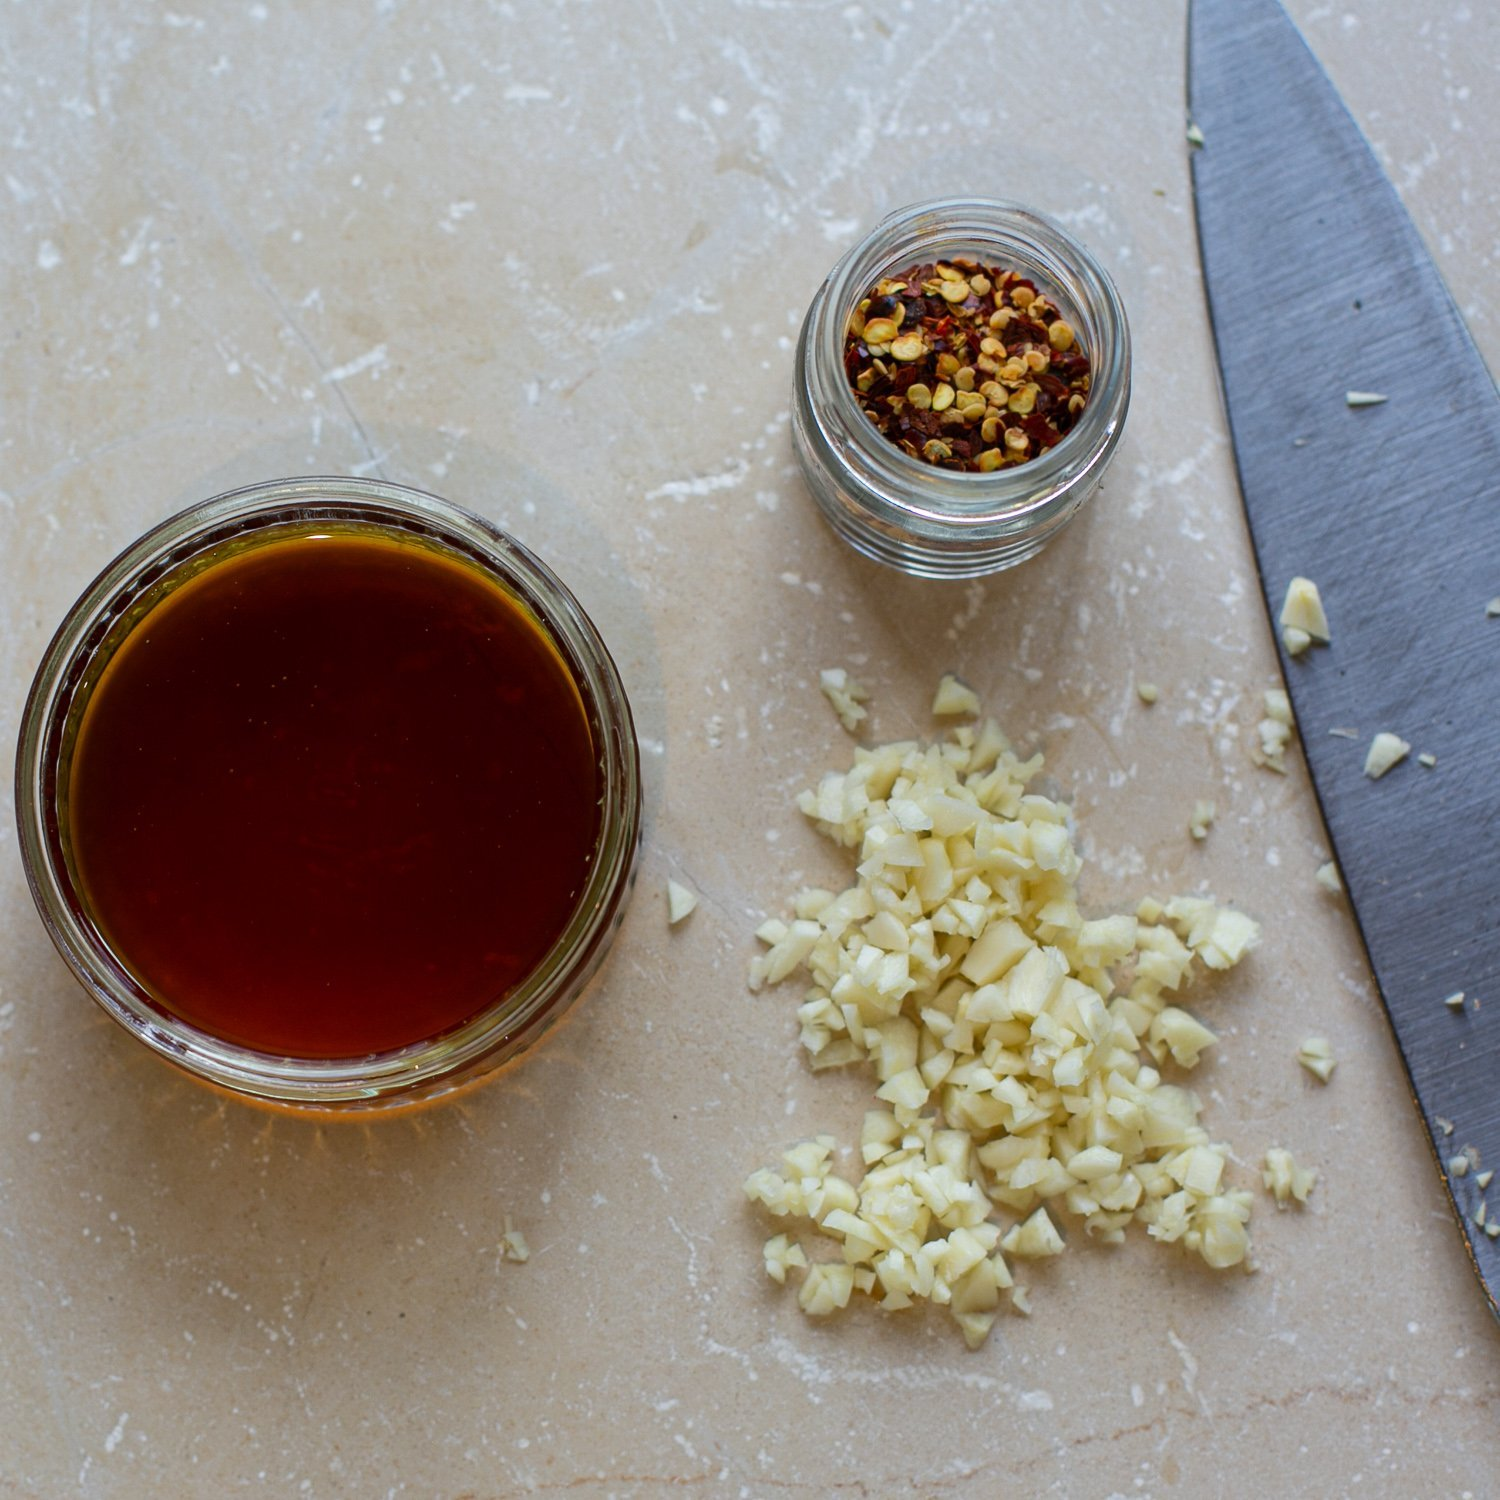 ingredients for homemade chilli oil